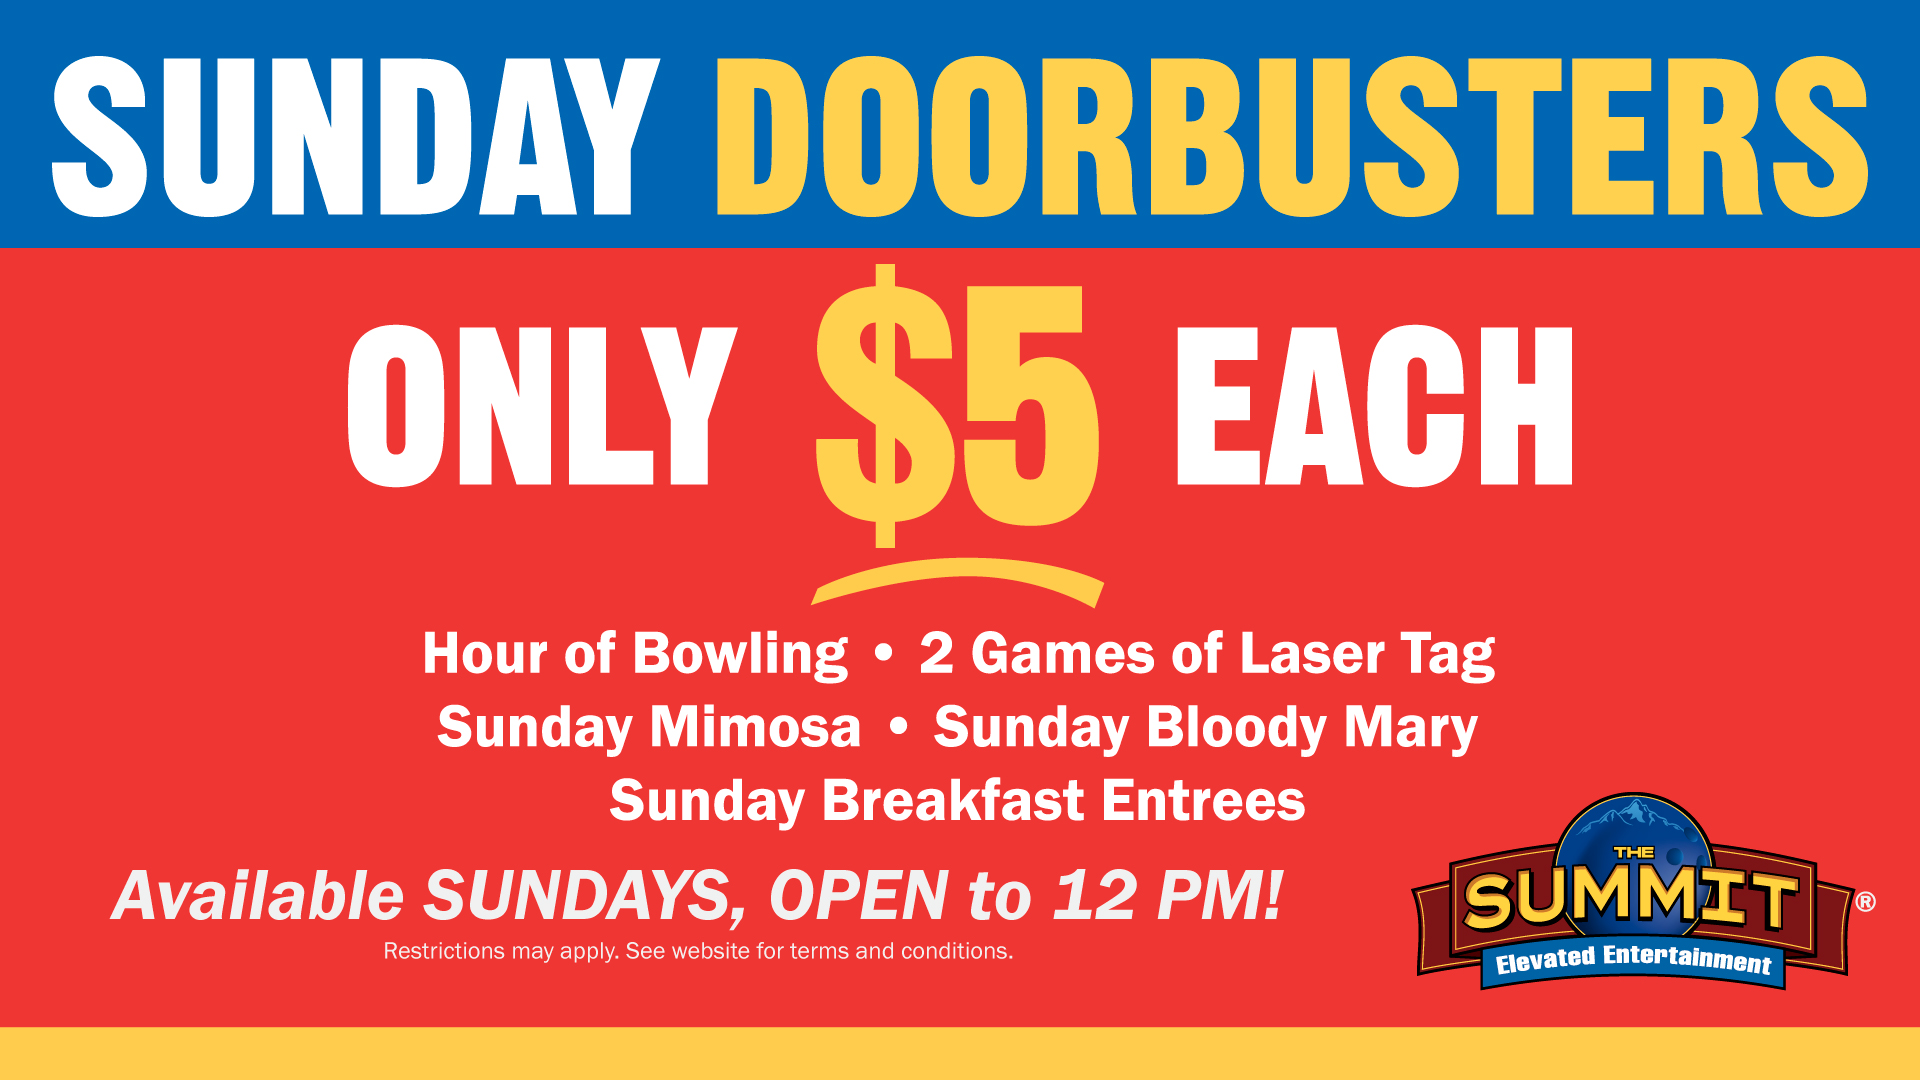 Sunday Doorbusters